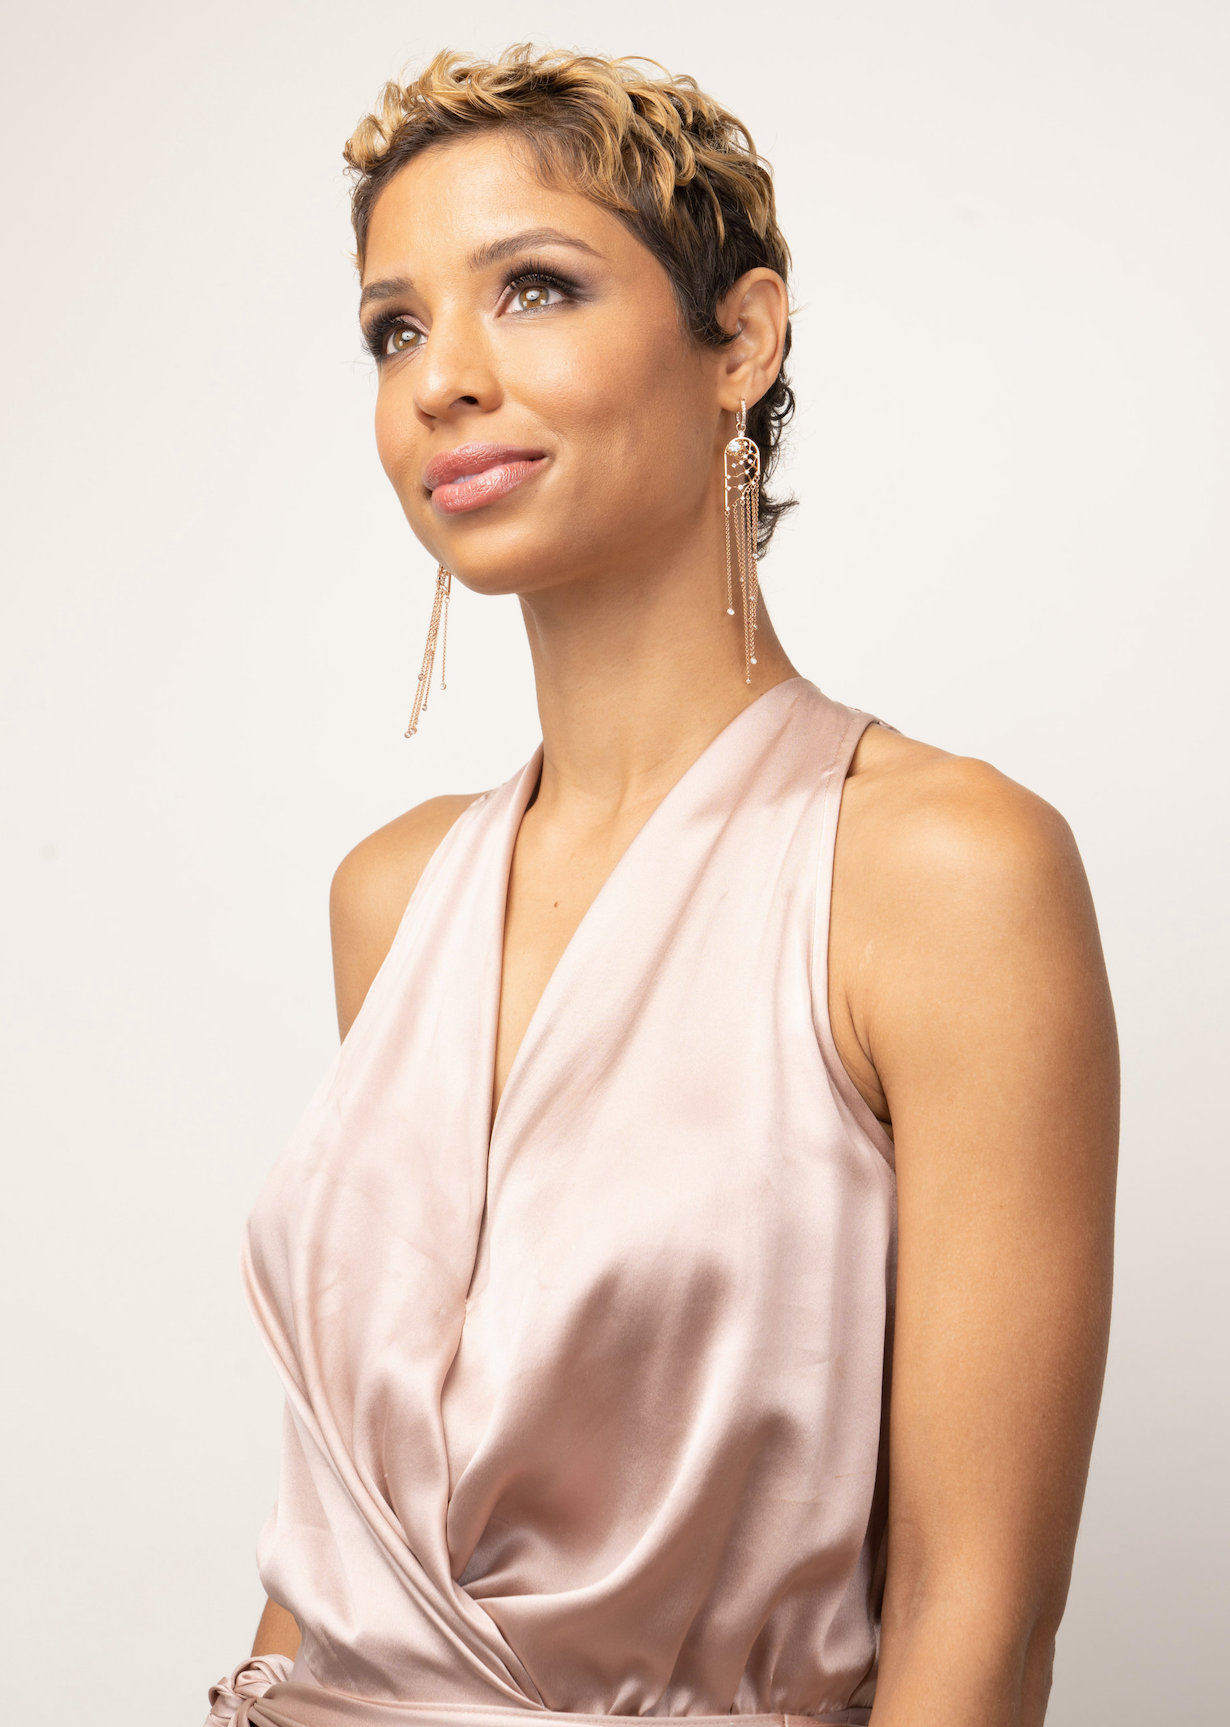 """Brytni Sarpy """"The Young and the Restless"""" Set CBS television City Los Angeles 09/10/21 © Howard Wise/jpistudios.com 310-657-9661"""